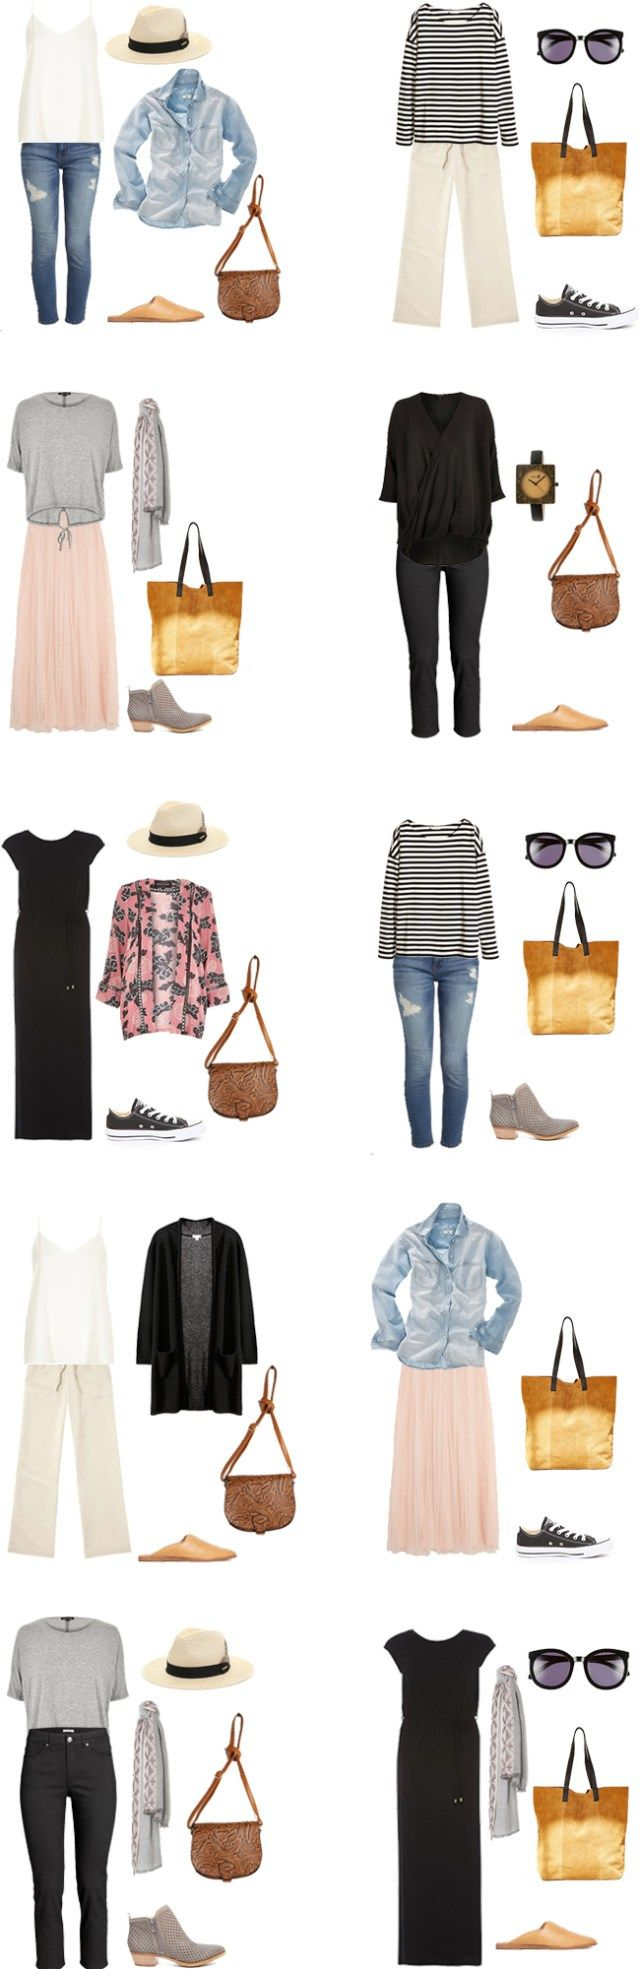 livelovesara - My life in a blog by Sara Watson. Packing list: New Orleans- Outfits Options. Spring 2016